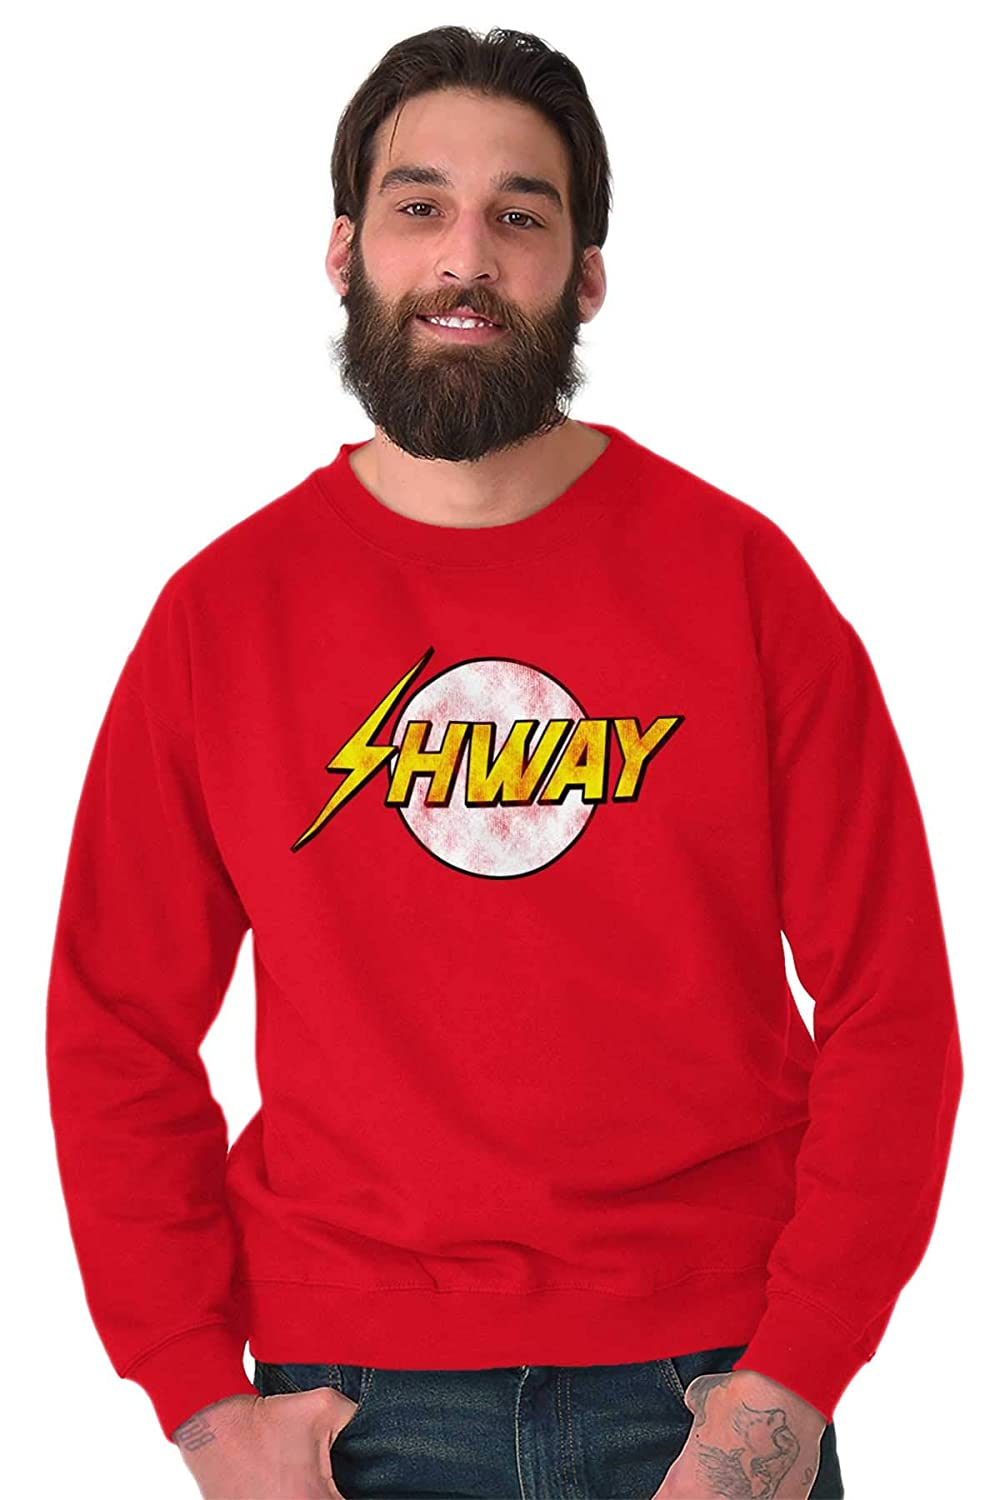 Brisco Brands Cool Shway Comic Book Hero Saying Flash Crewneck Sweatshirt